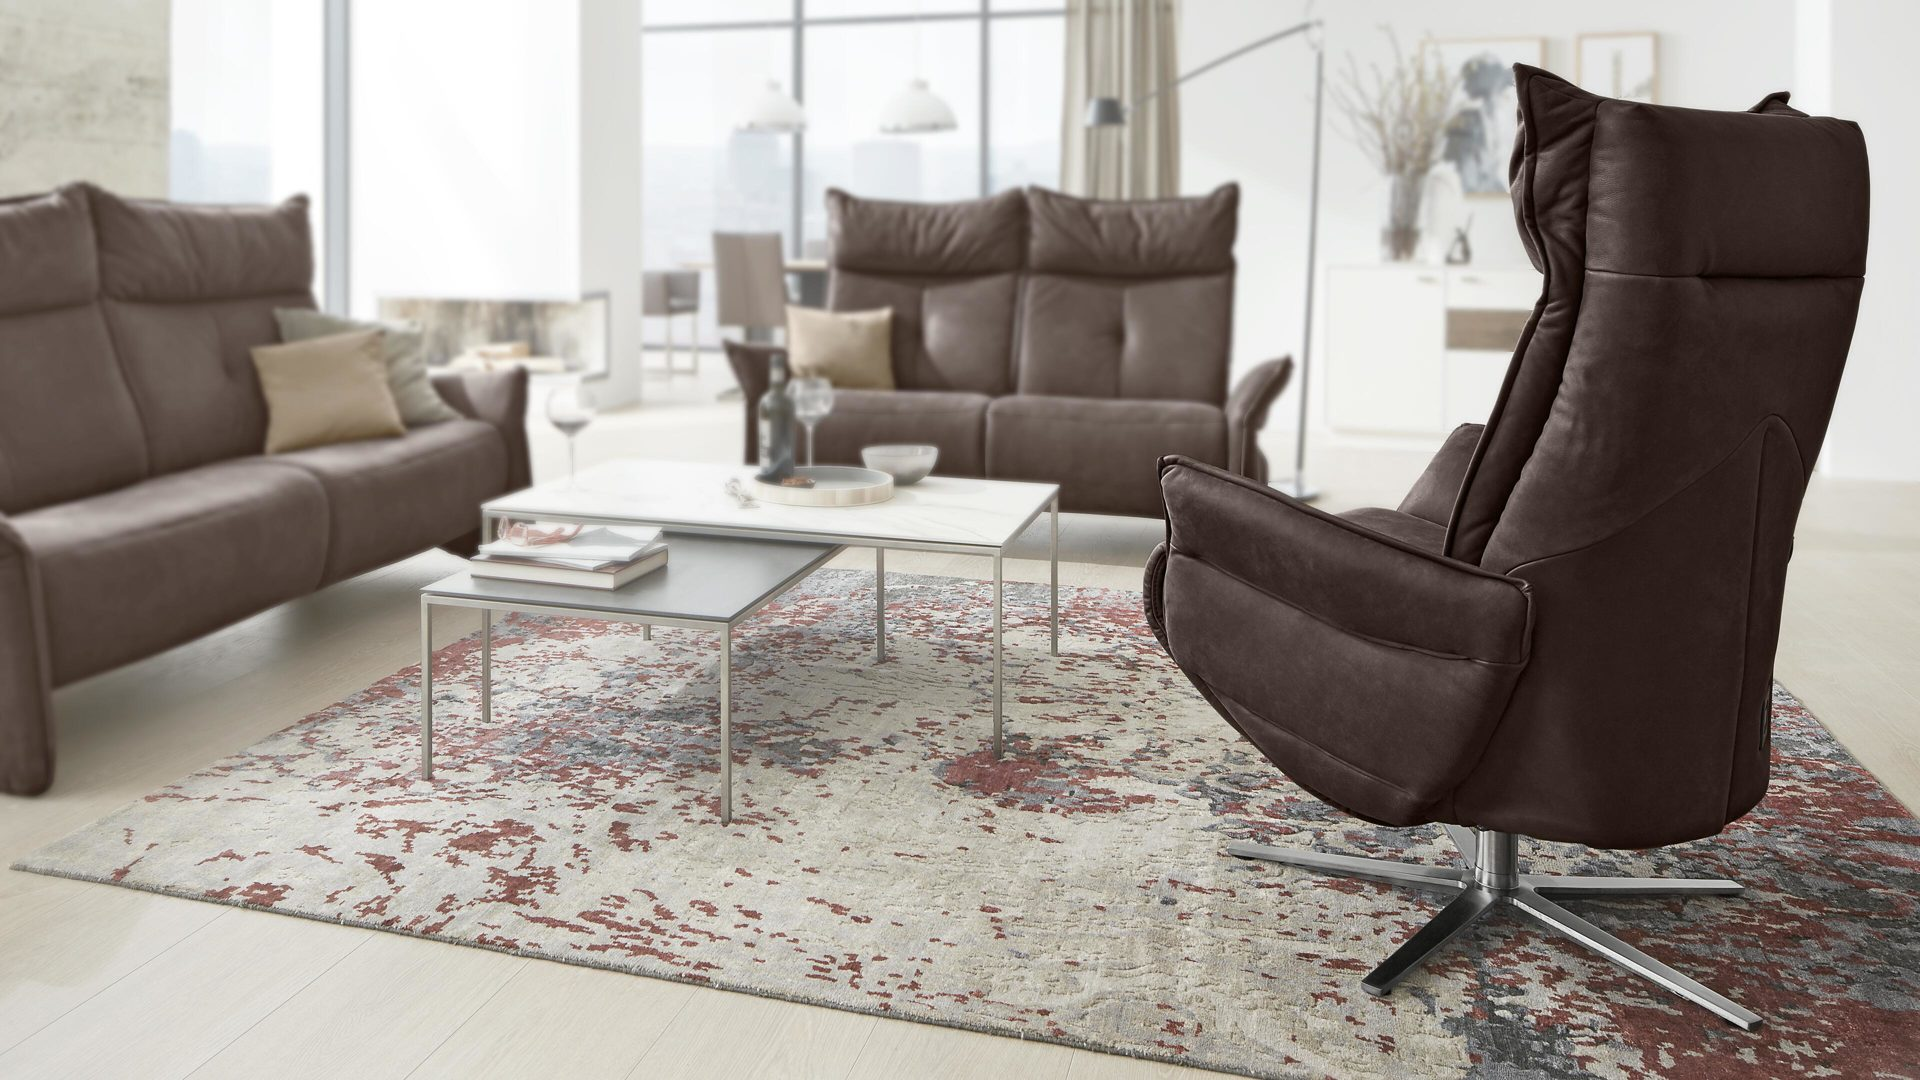 Himolla Interliving Comfortmaster Relaxsessel 3 2 Auch 2 5 2